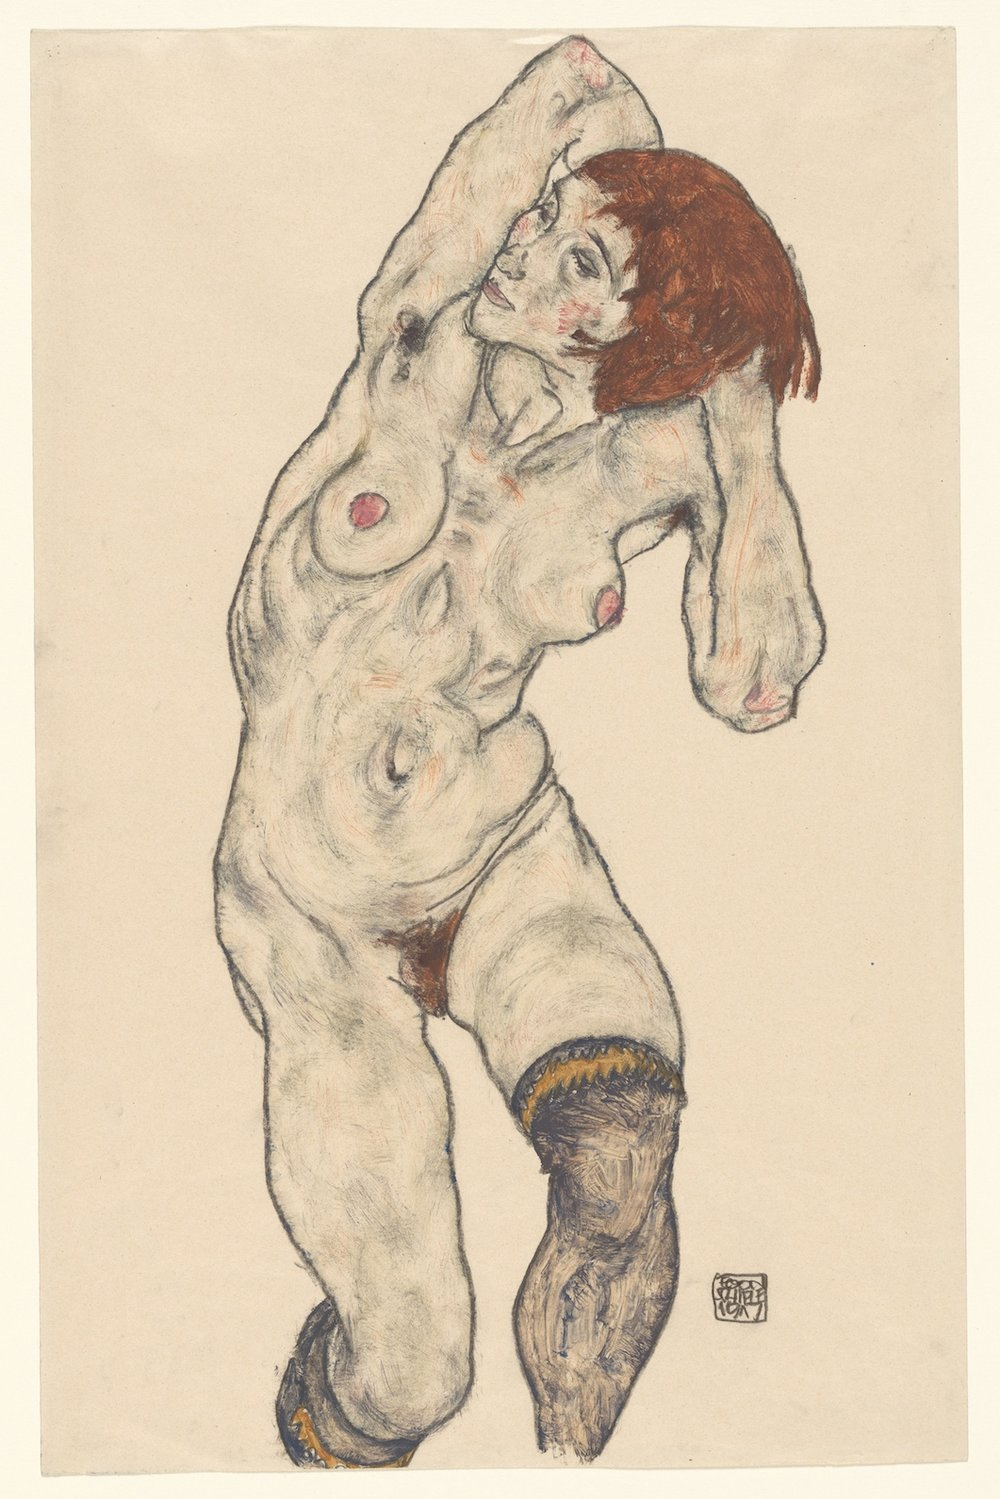 October 18 - December 10 2017   Figuration and Ideology    The Avant-garde experiences    of the first half of the 20th century     Schiele, Grosz, Picasso, Kubin,  Klee, Kirchner, Schneider, Heine